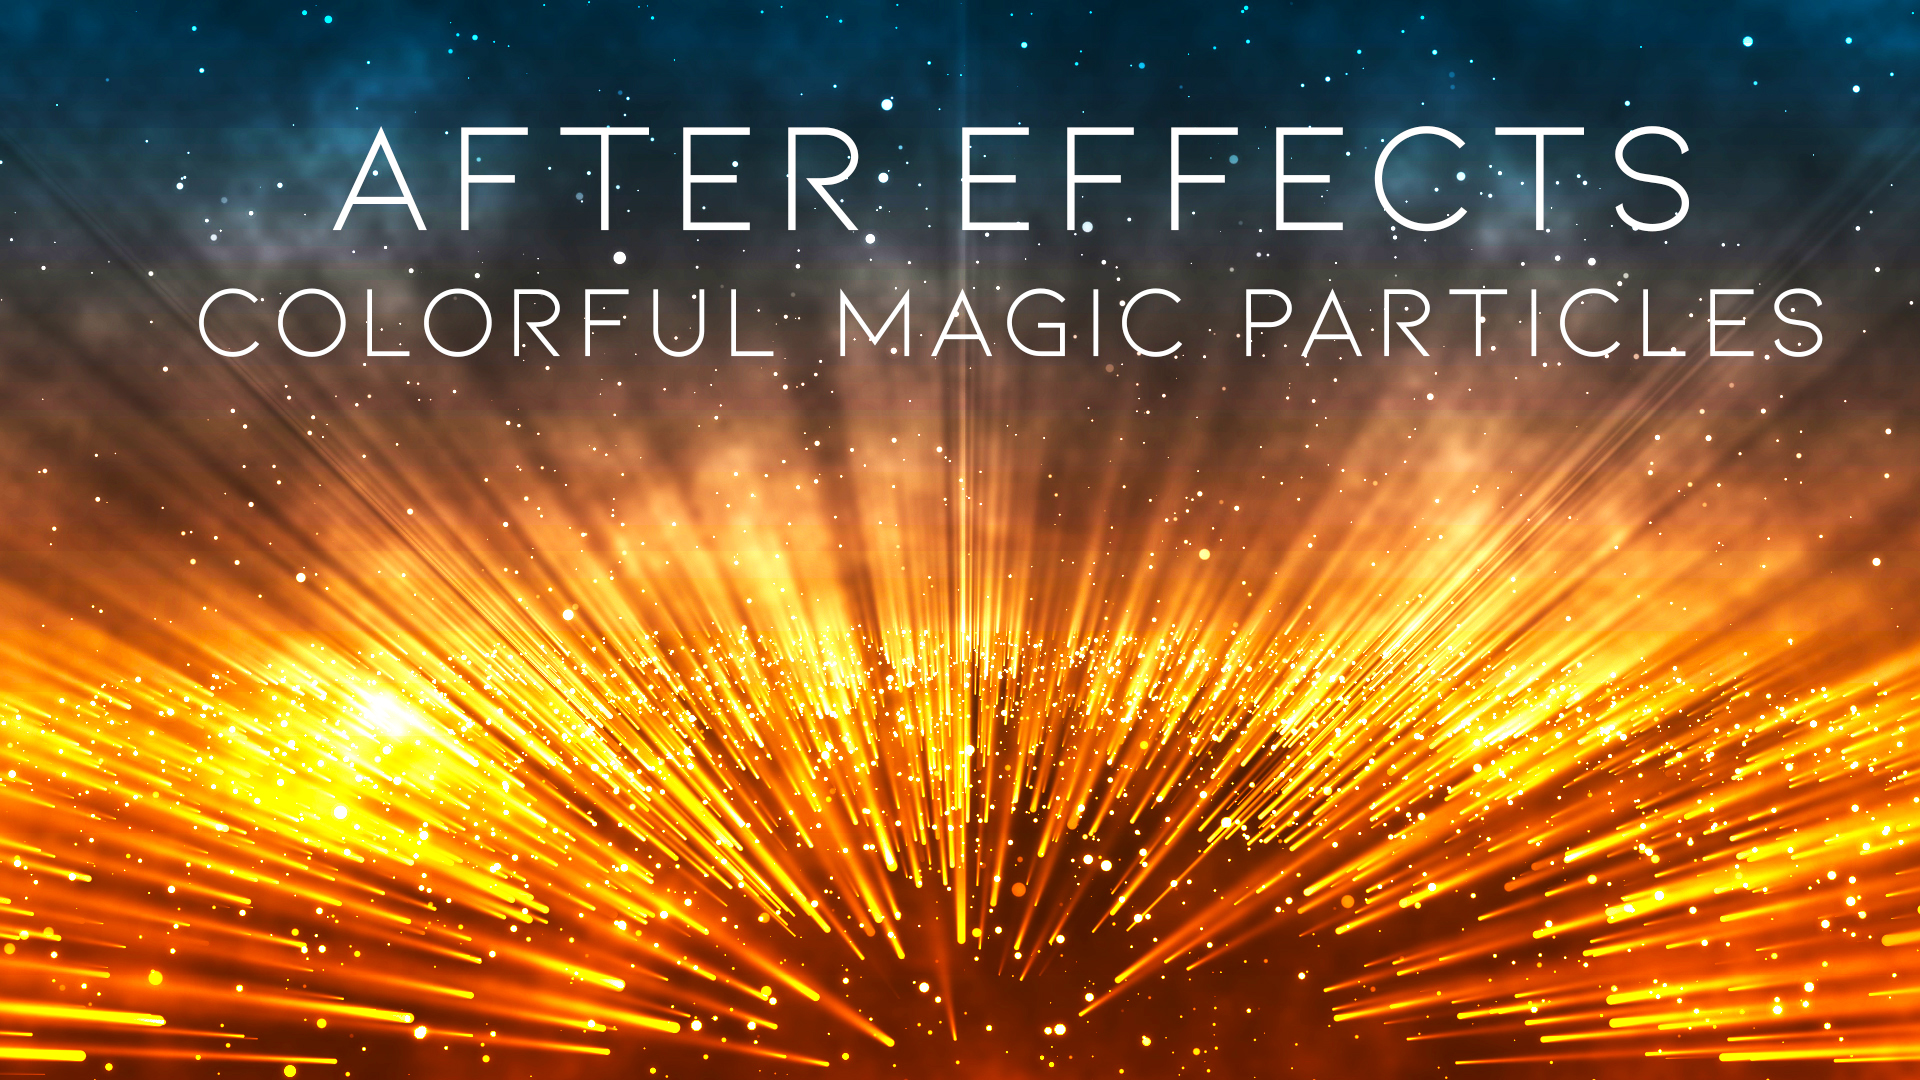 After Effects CC 2019 – Colorful Magic Particles